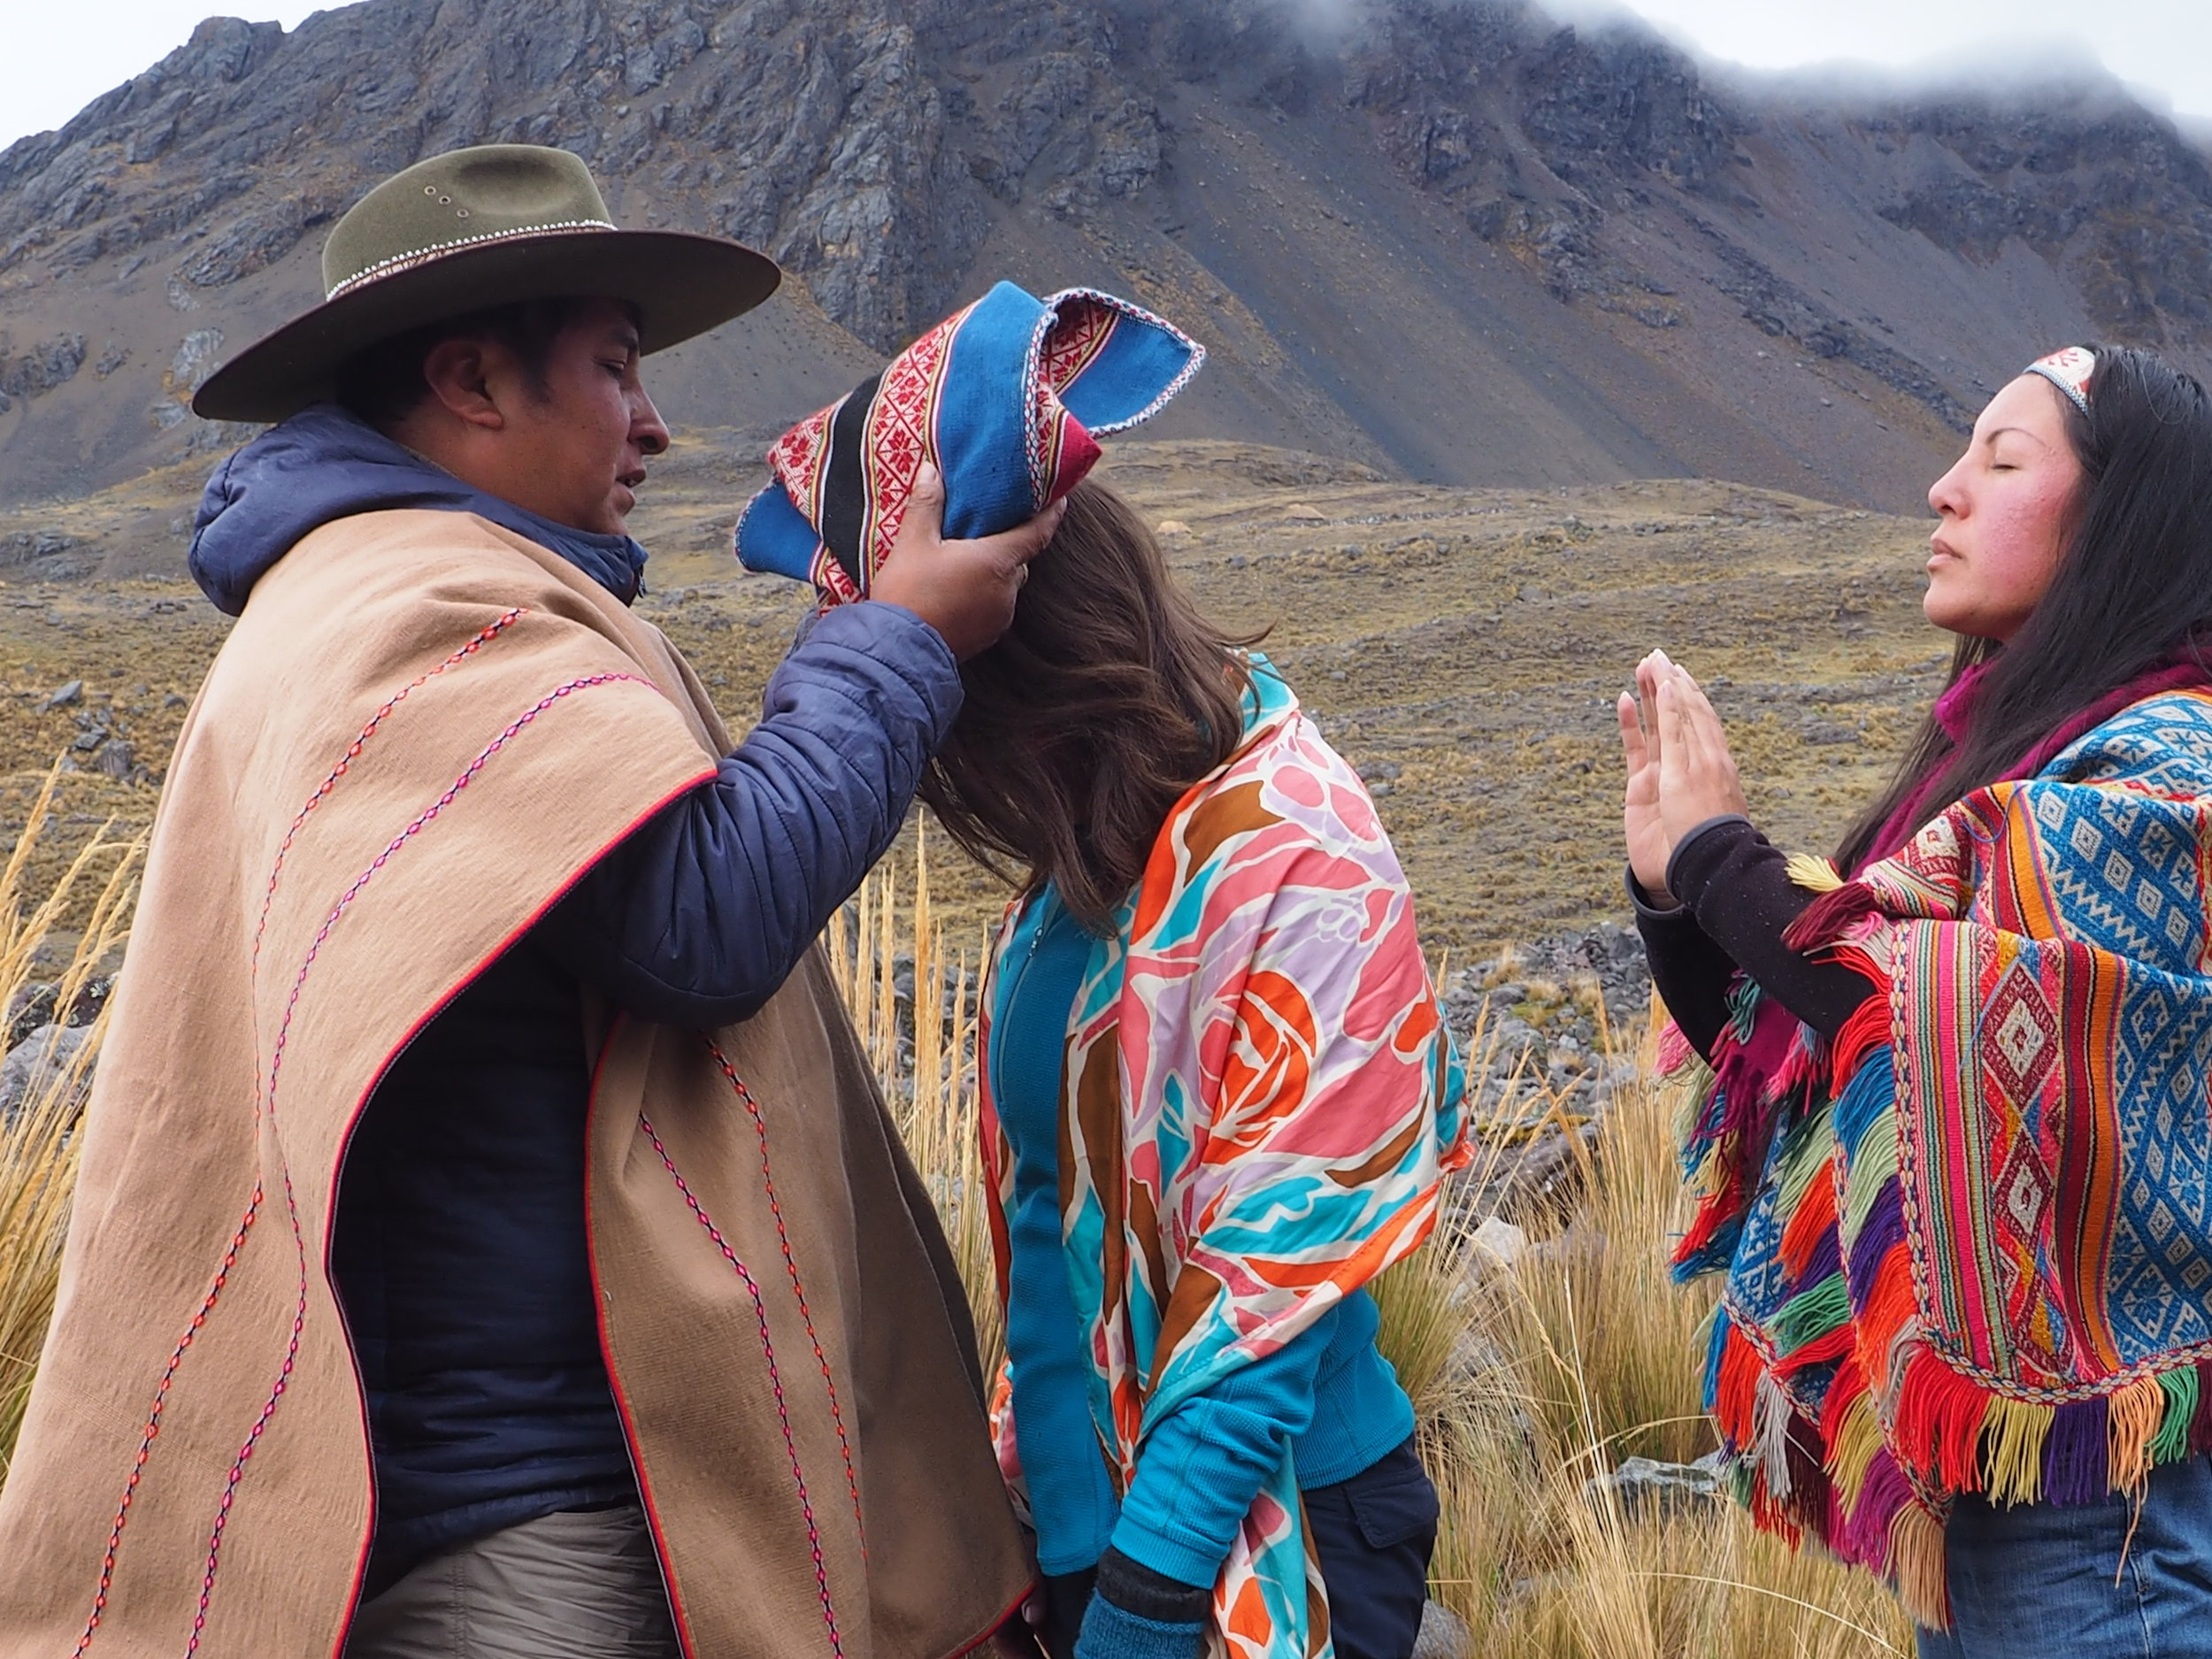 Initiation at the base of Apu Ausangate, with my Teacher Maestro Lorenzo,of the Inka Q'ero lineage, and my friend and colleague Q'orianka Gallegos, Inka High Priestess.